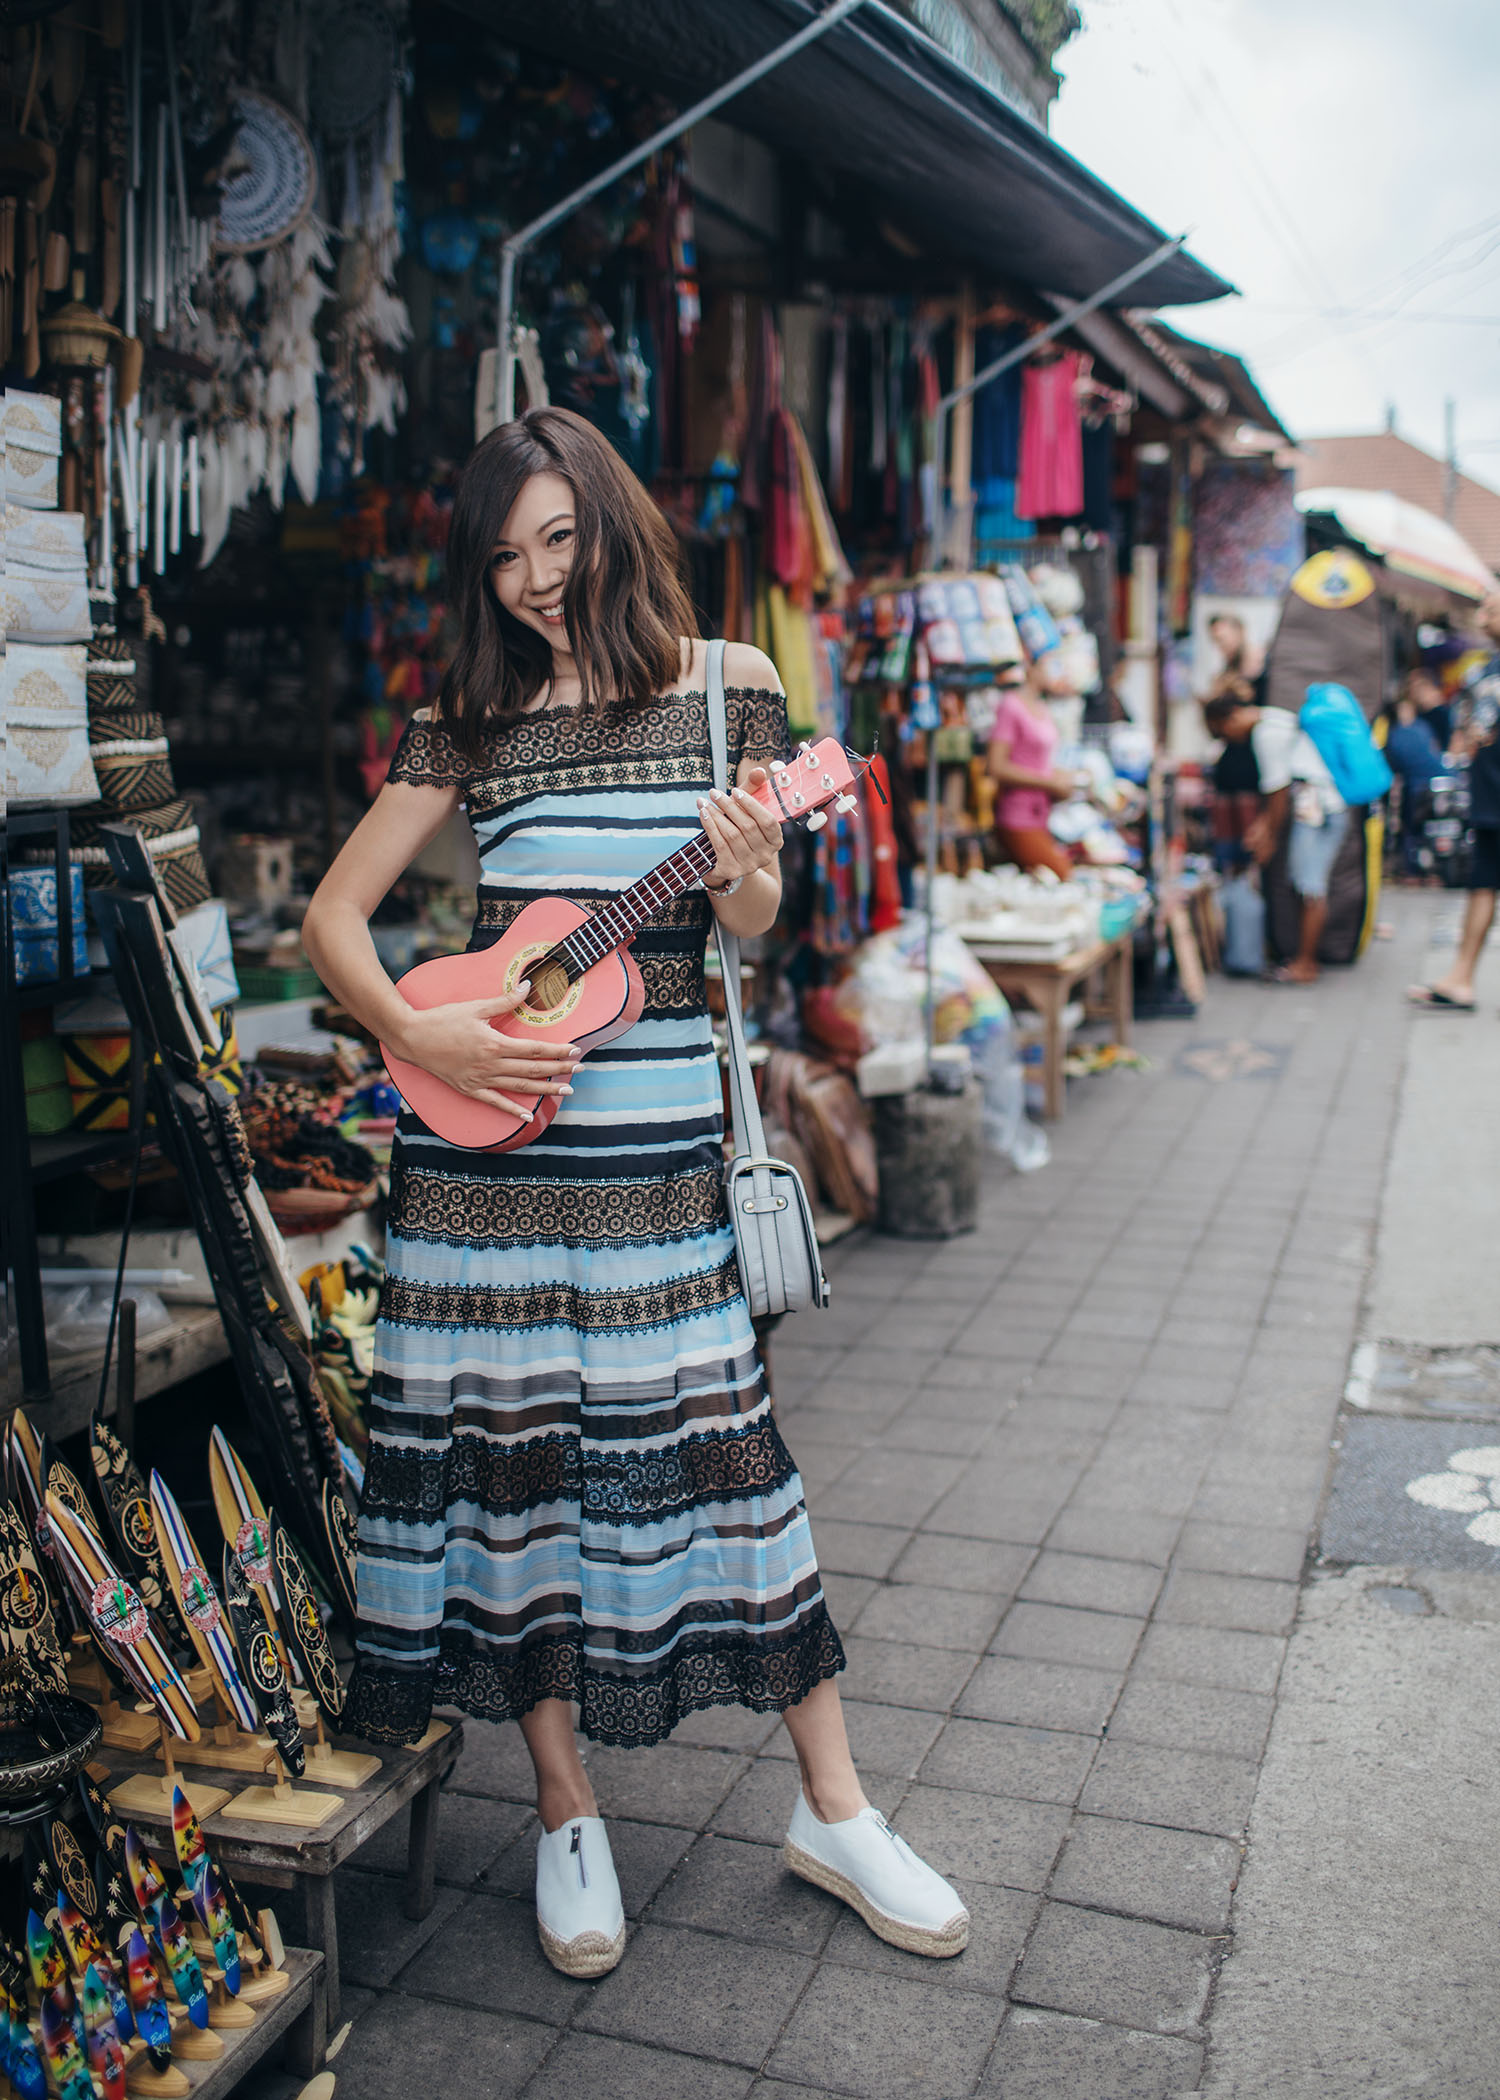 Fashion and travel blogger influencer Jenny Tsang of Tsangtastic traveling in Bali, Indonesia, wearing TADASHI SHOJI Dress, at Ubud Market.